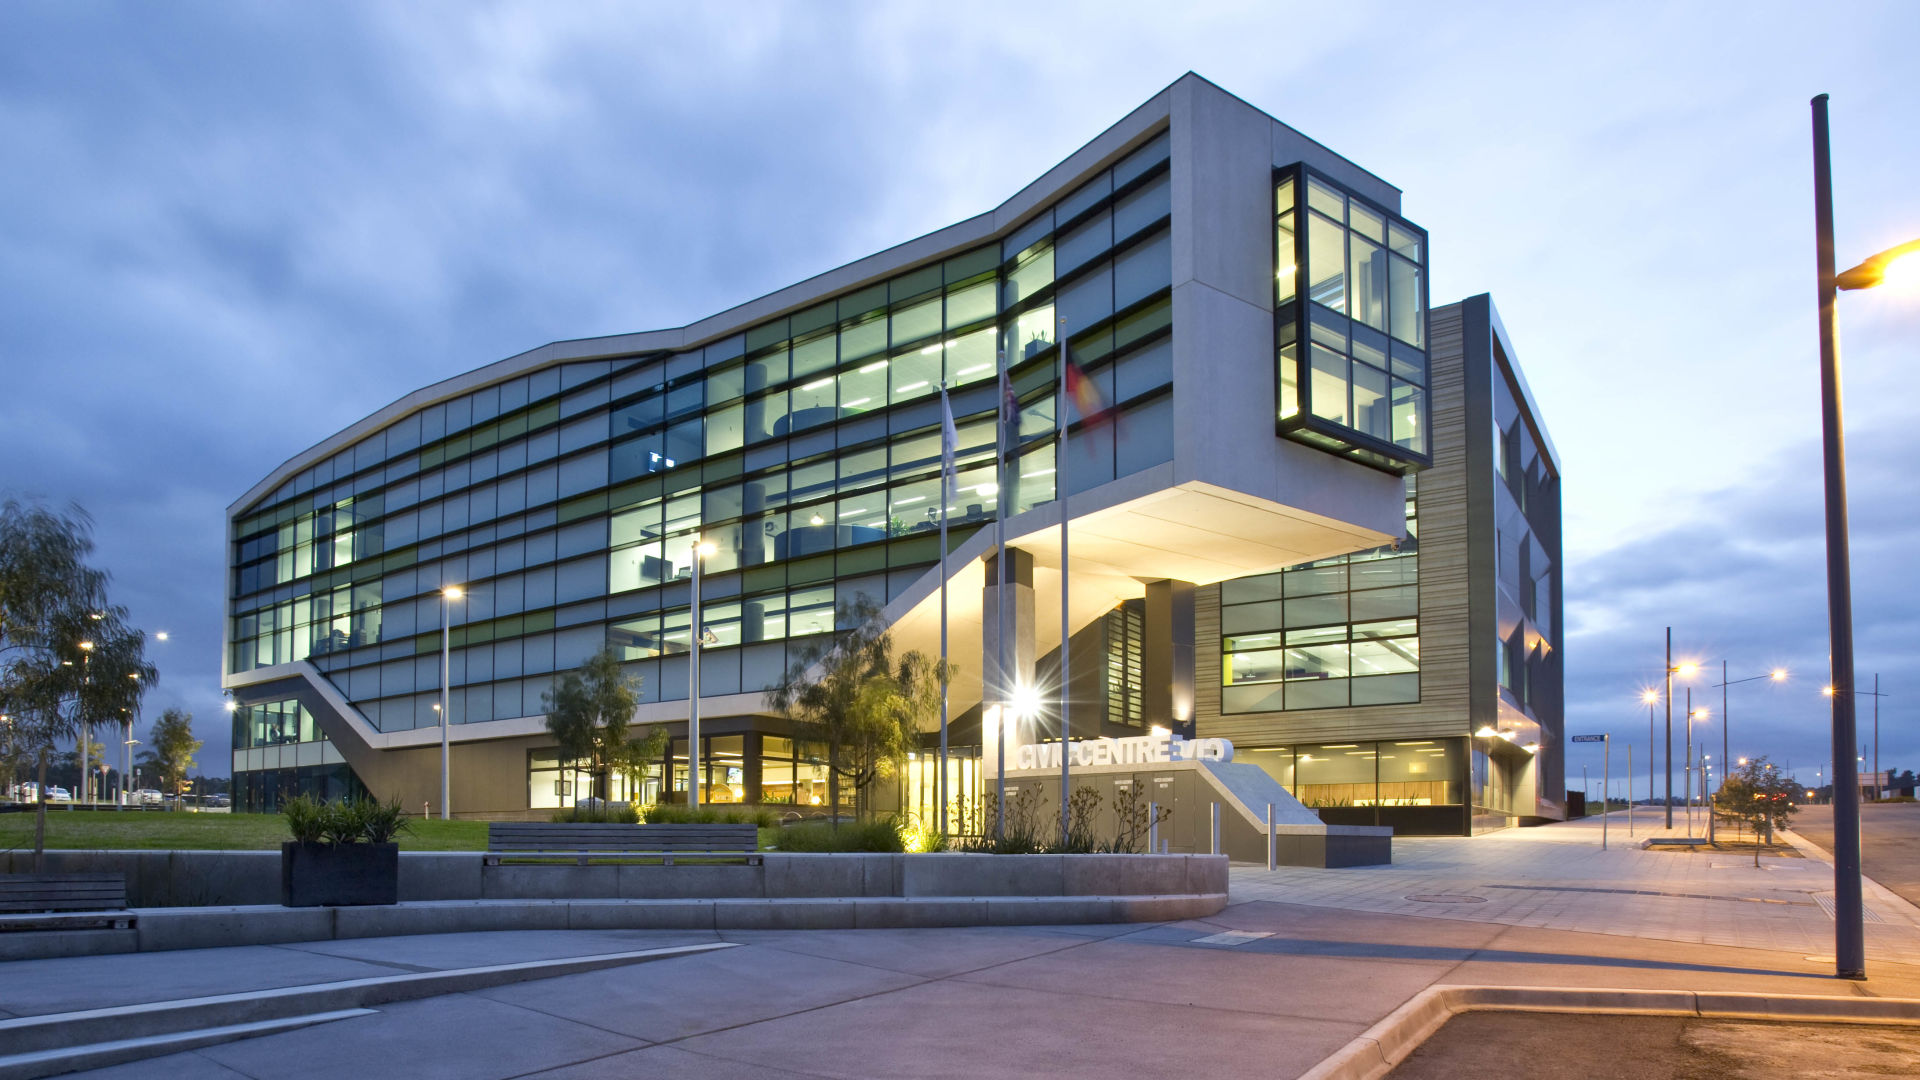 Cardinia Shire Offices